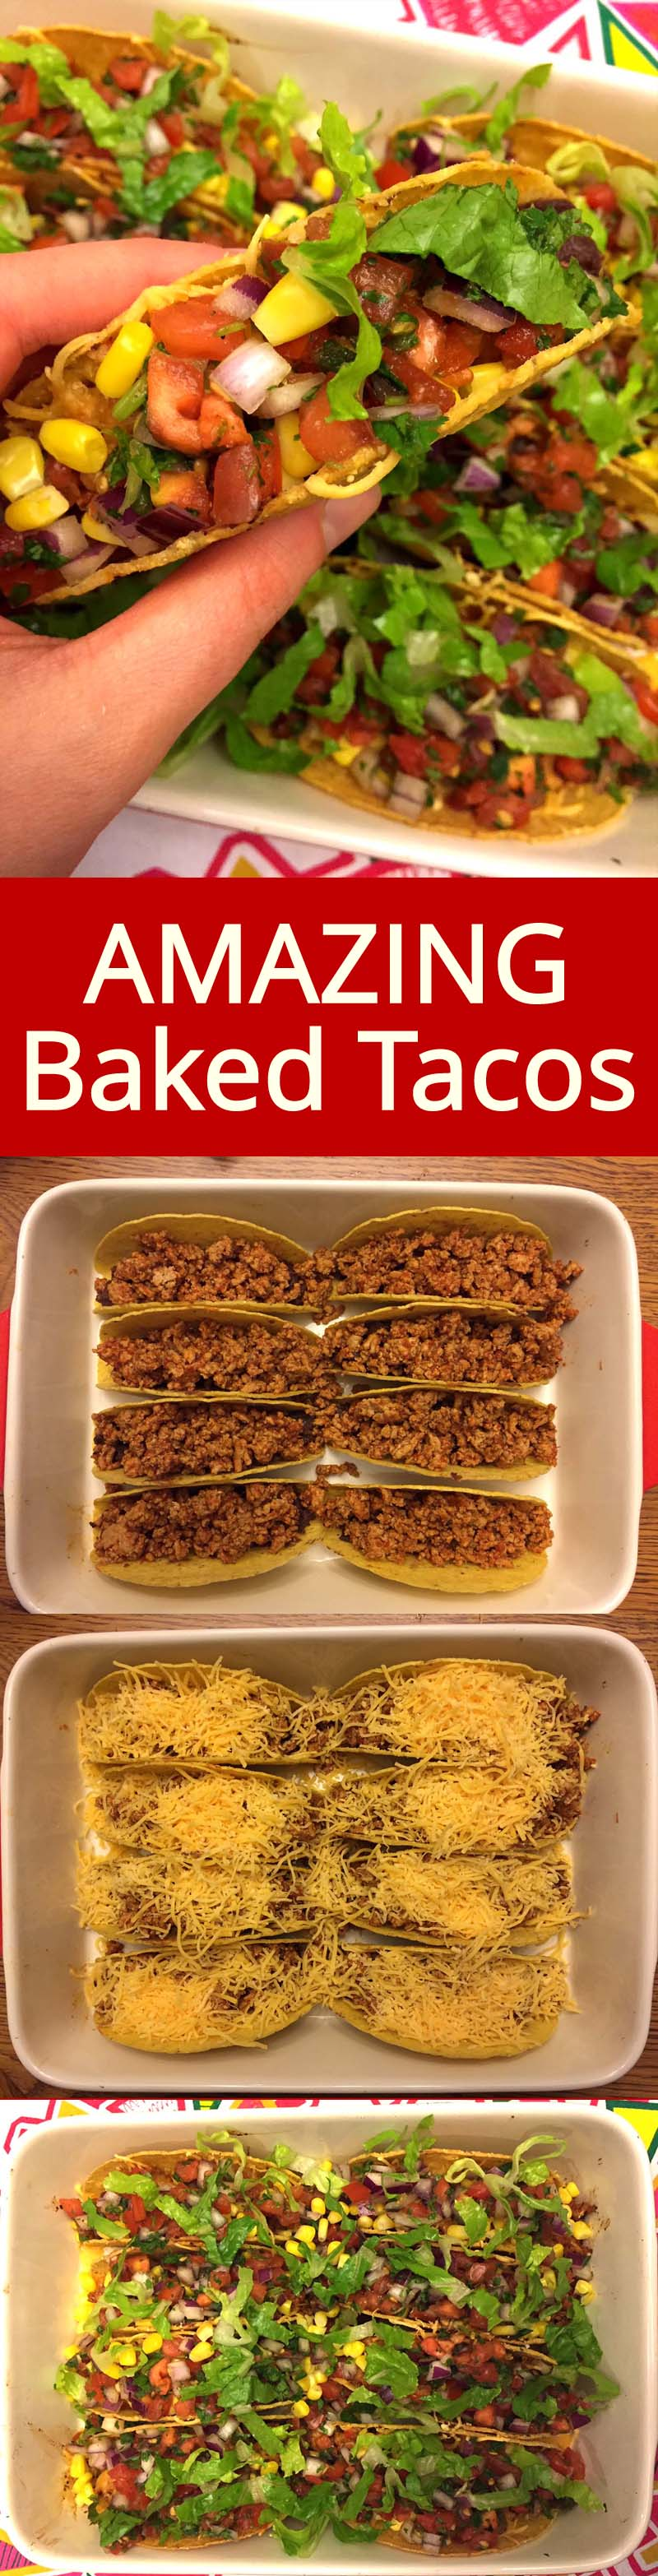 I love these oven baked tacos! What a perfect way to serve tacos for a crowd!  Tacos are assembled and warm, with melted cheese inside - just add the toppings!